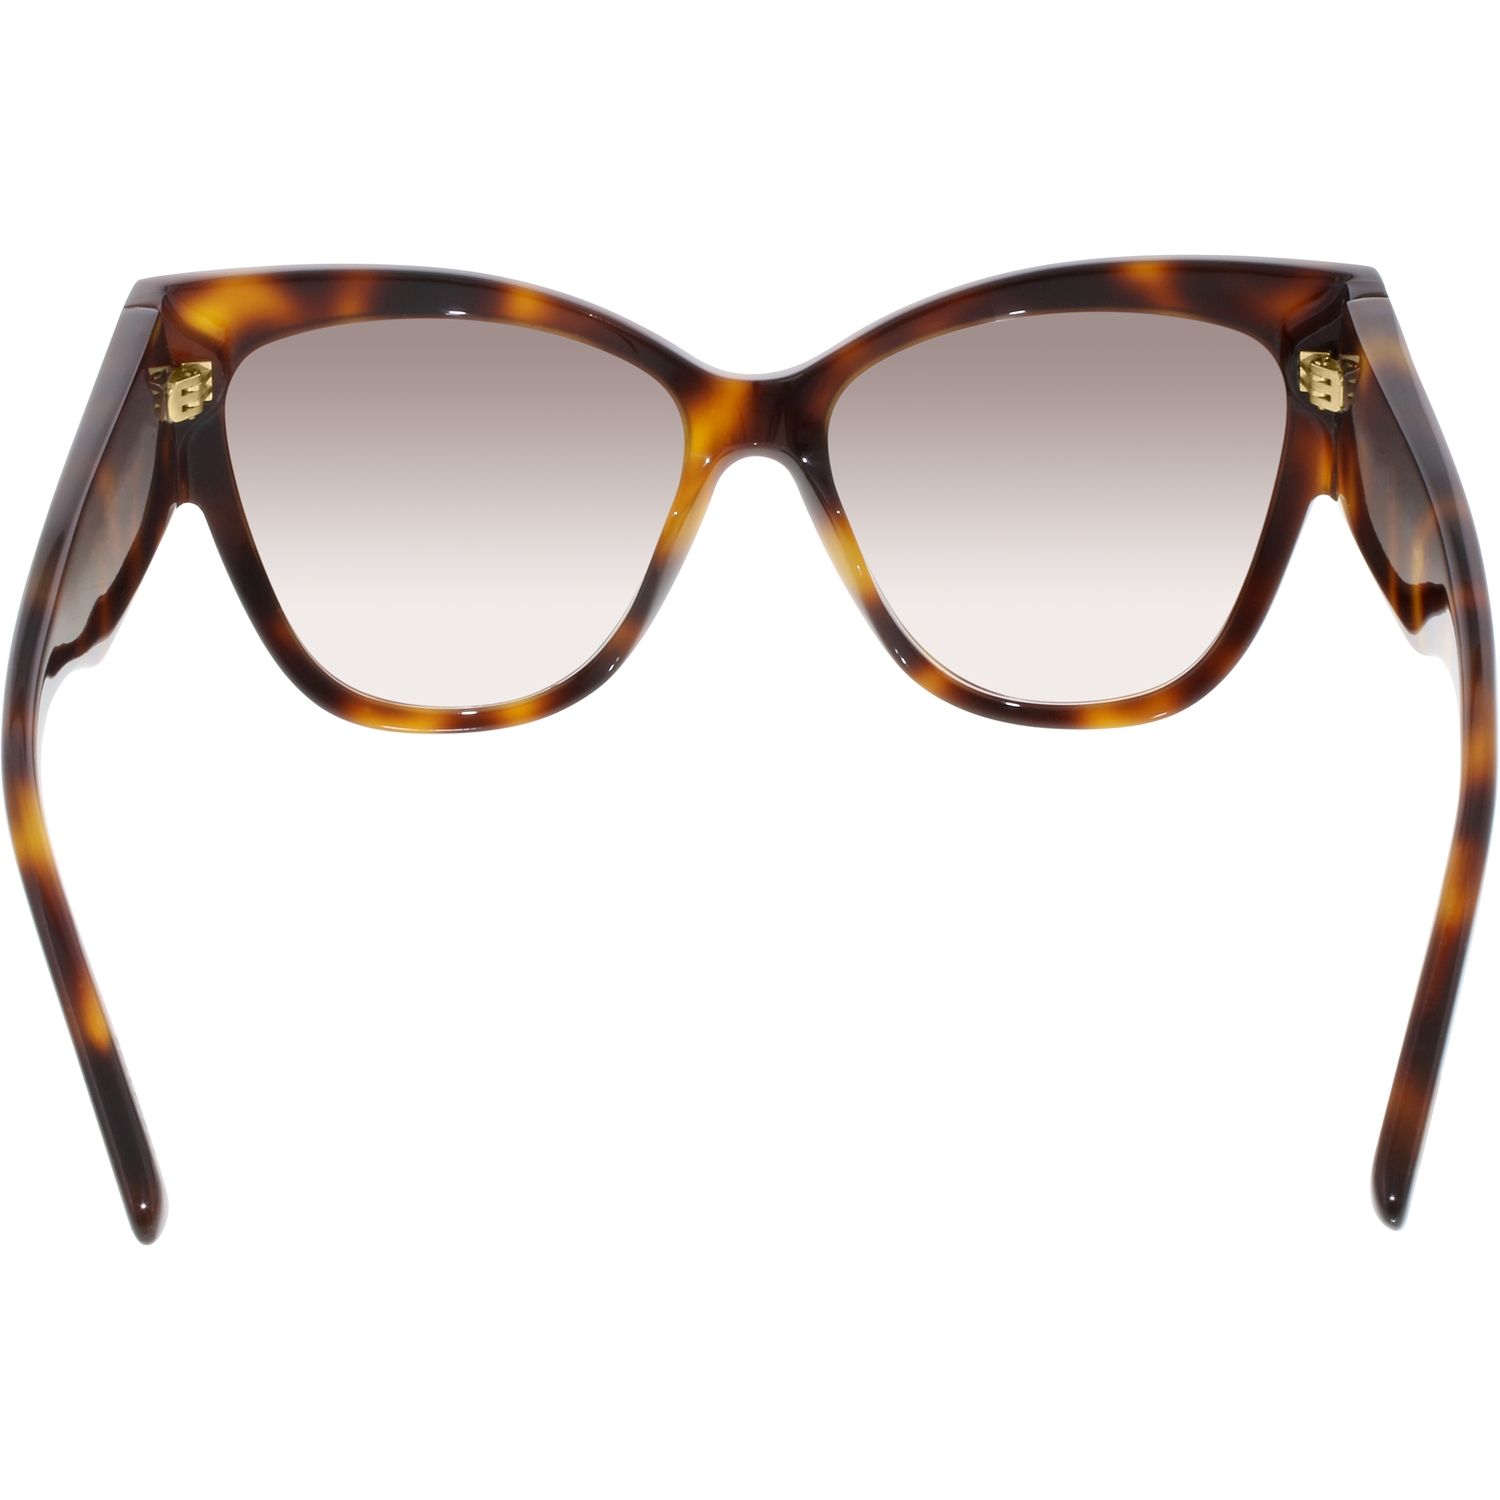 033700c299651 Tom Ford - Women's Gradient Anoushka FT0371-53F-57 Tortoiseshell Cat Eye  Sunglasses - Walmart.com